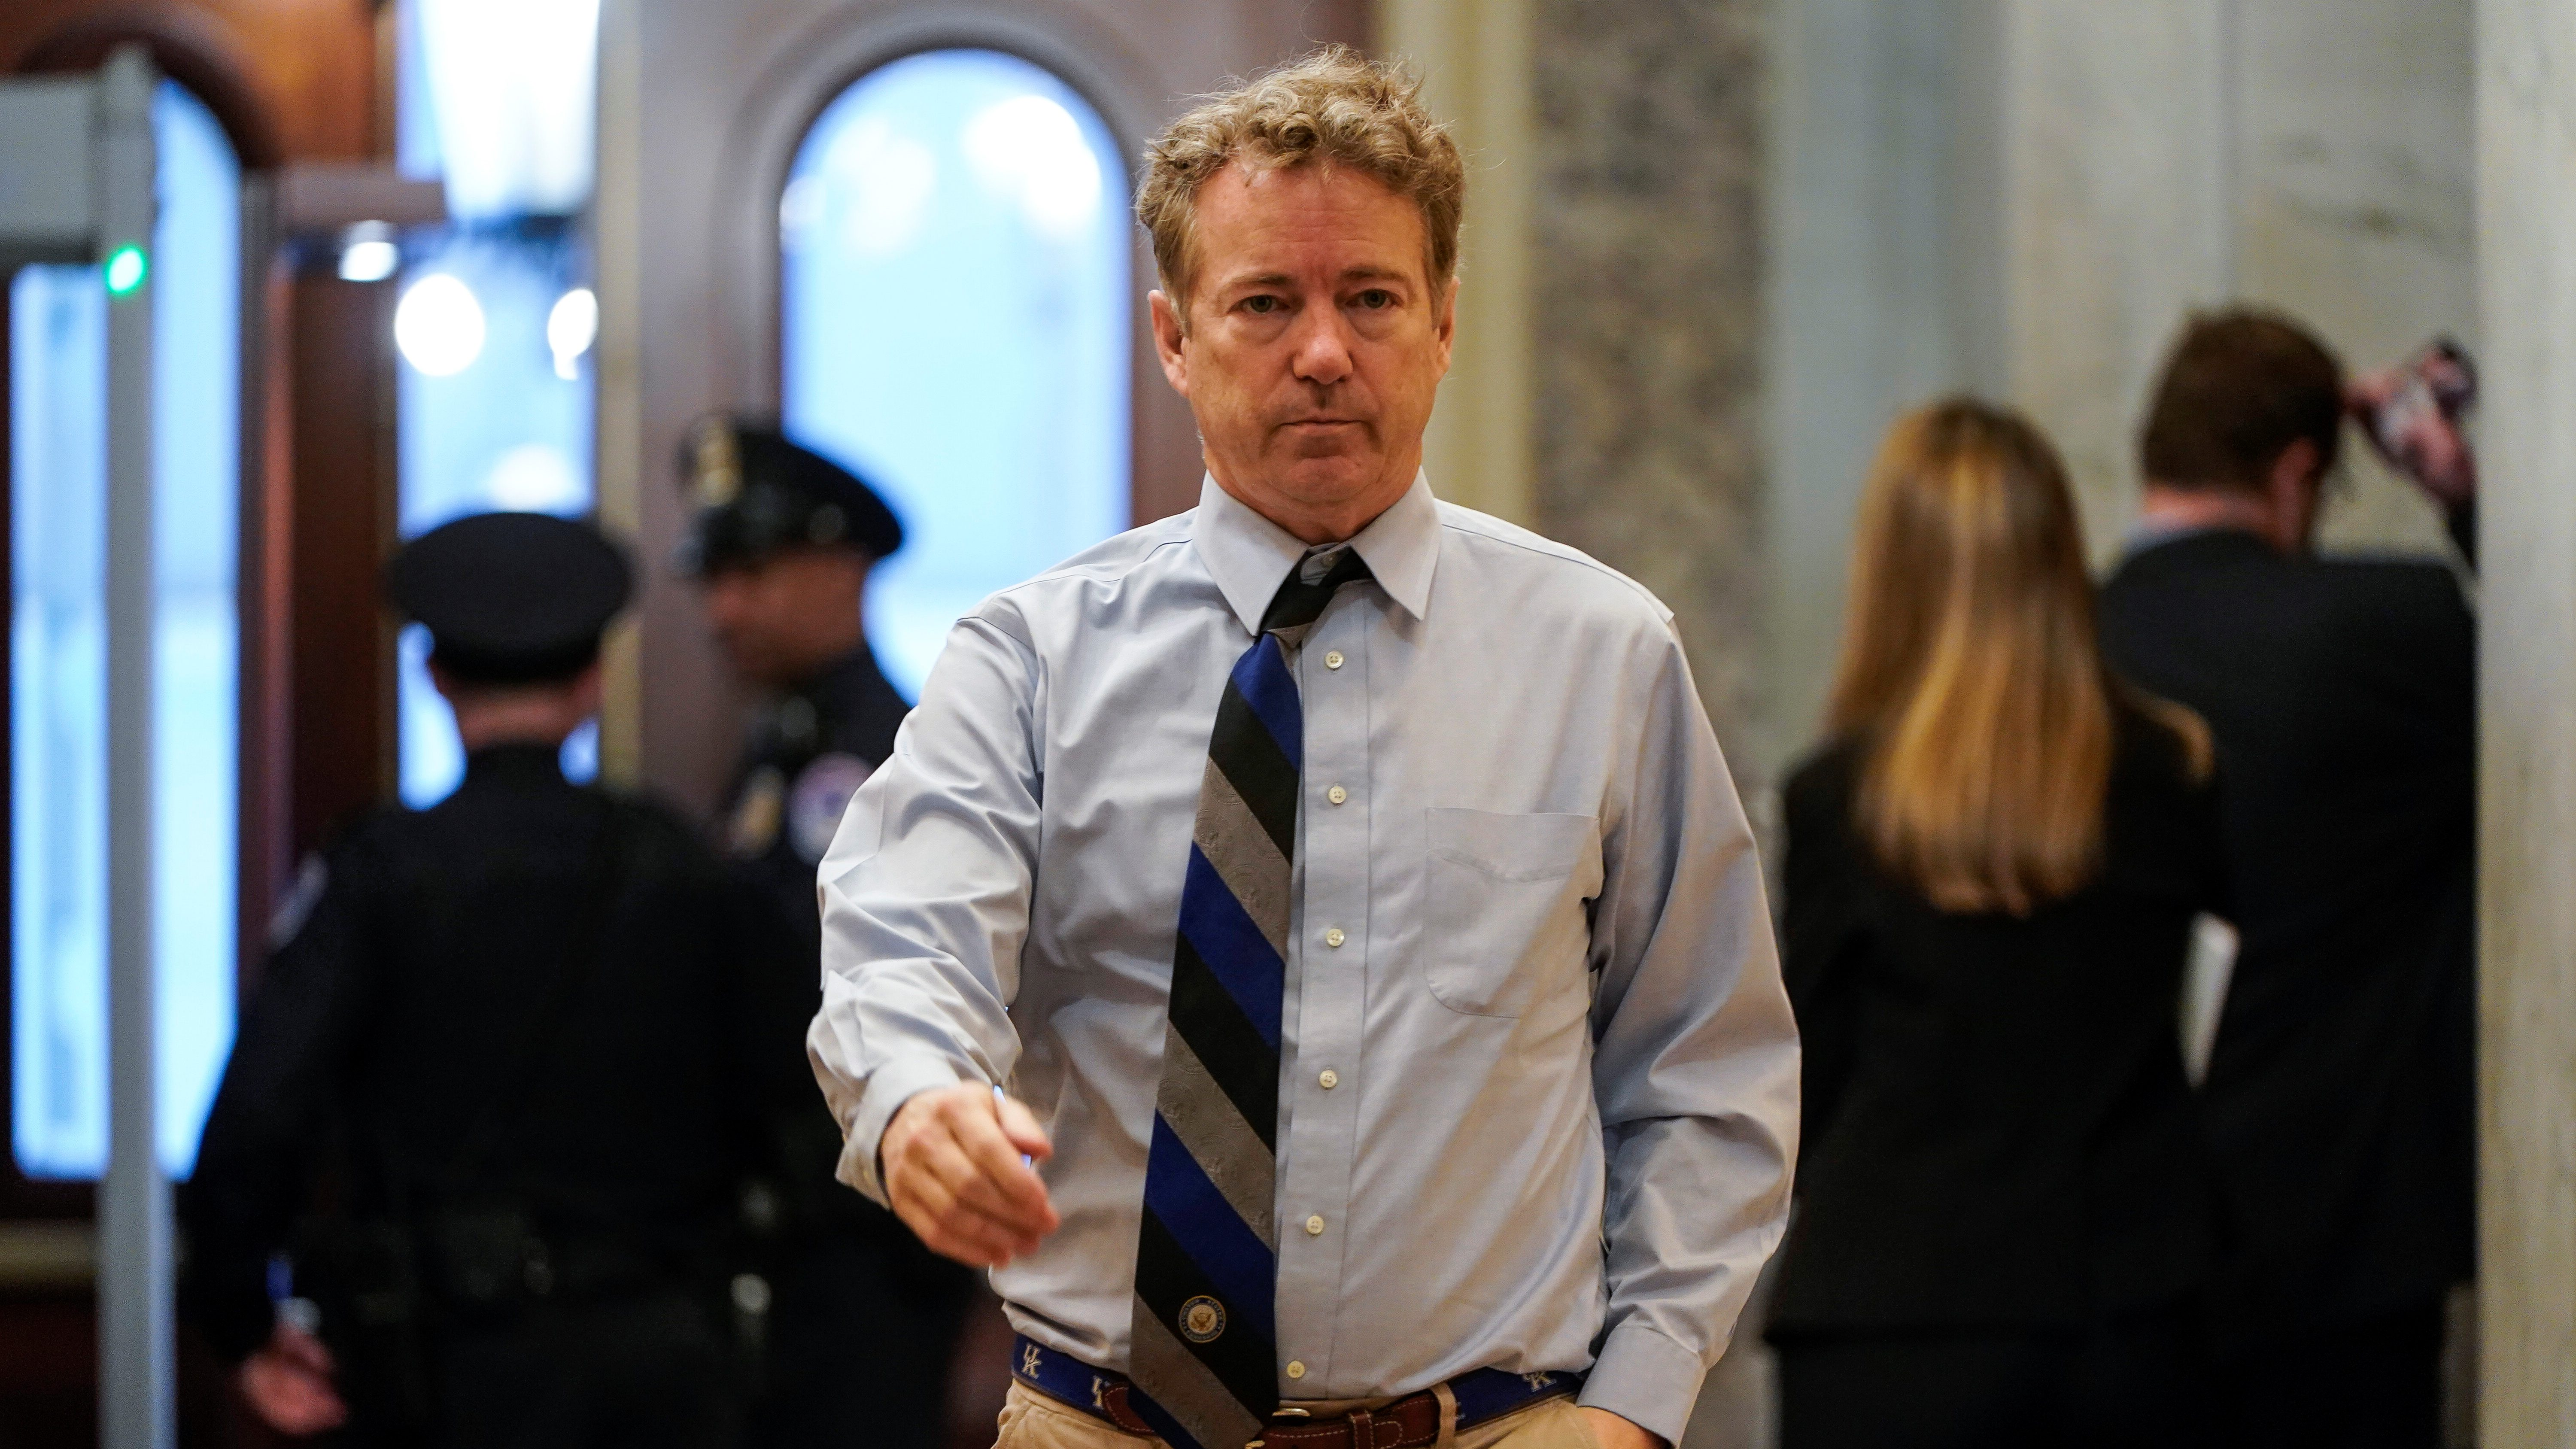 Rand Paul has tested positive for Covid-19.